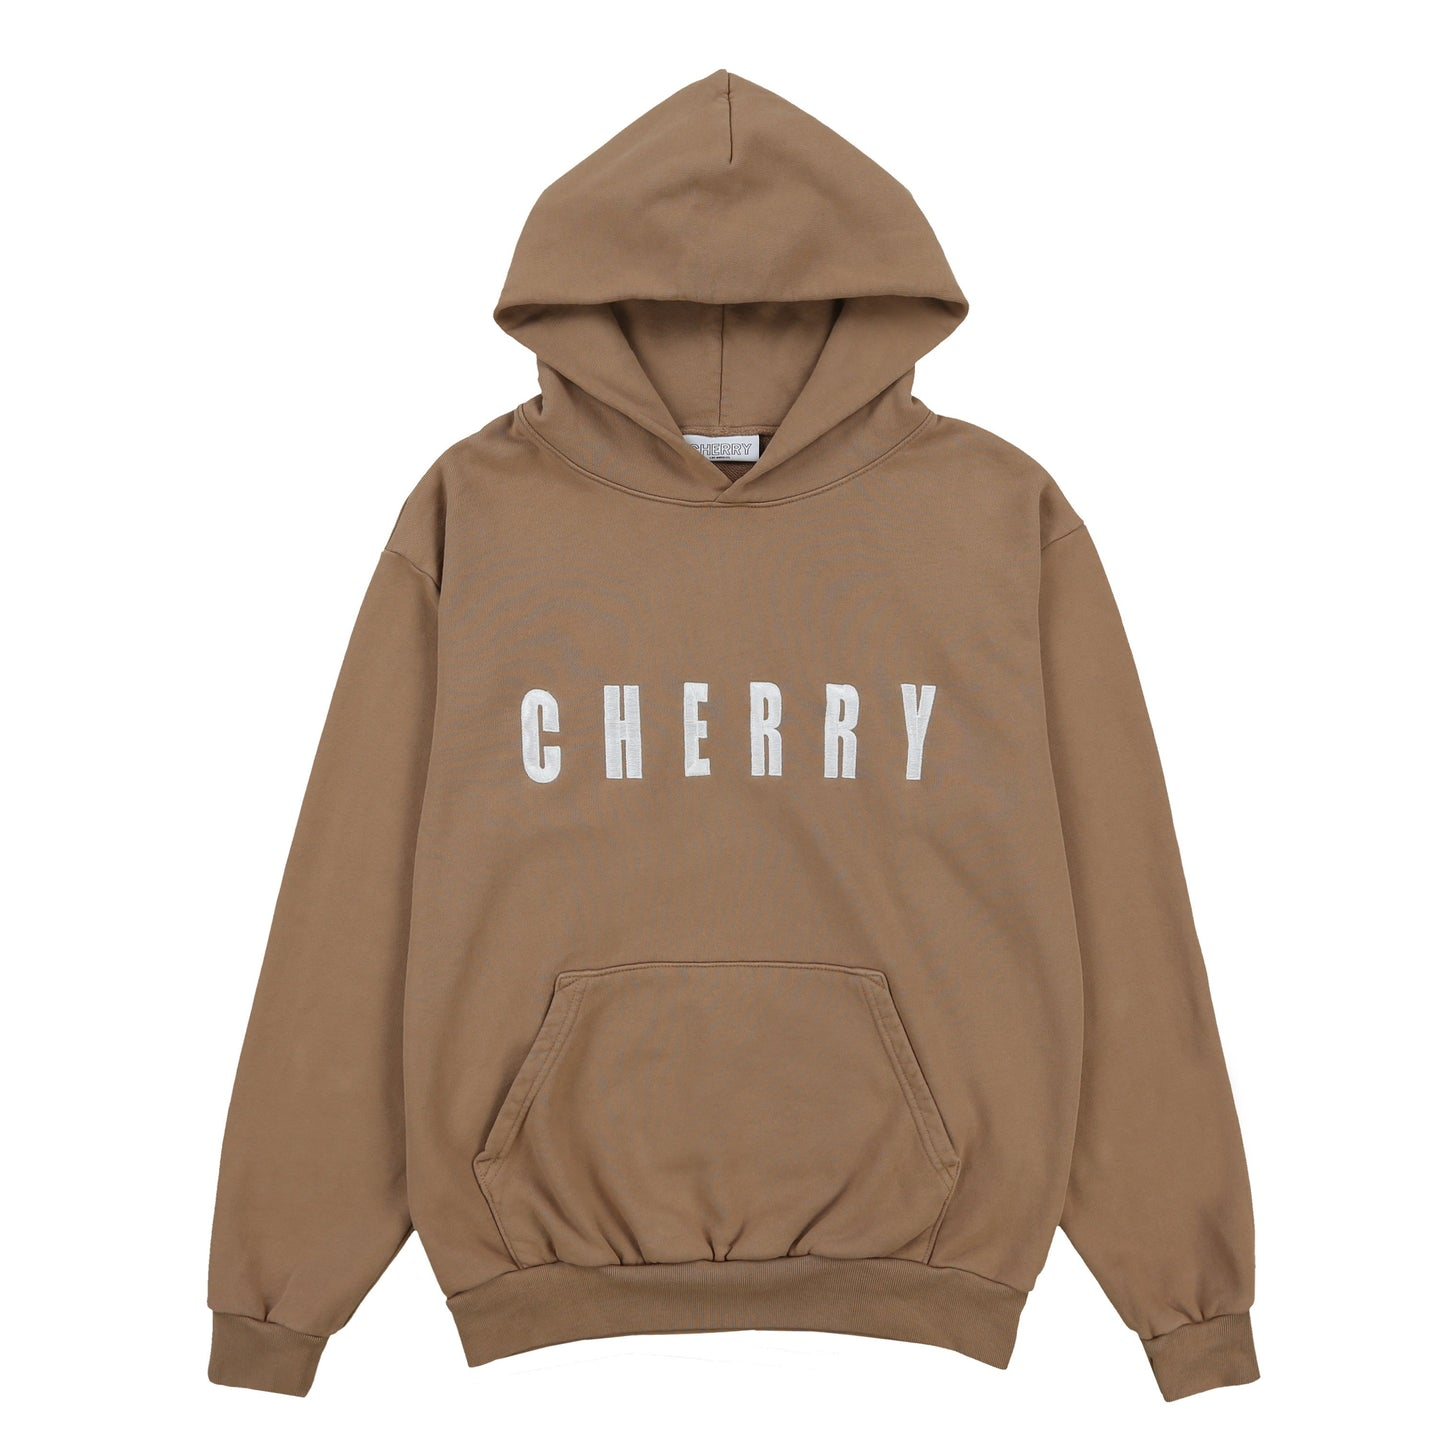 CHERRY EMBROIDERED HOODIE